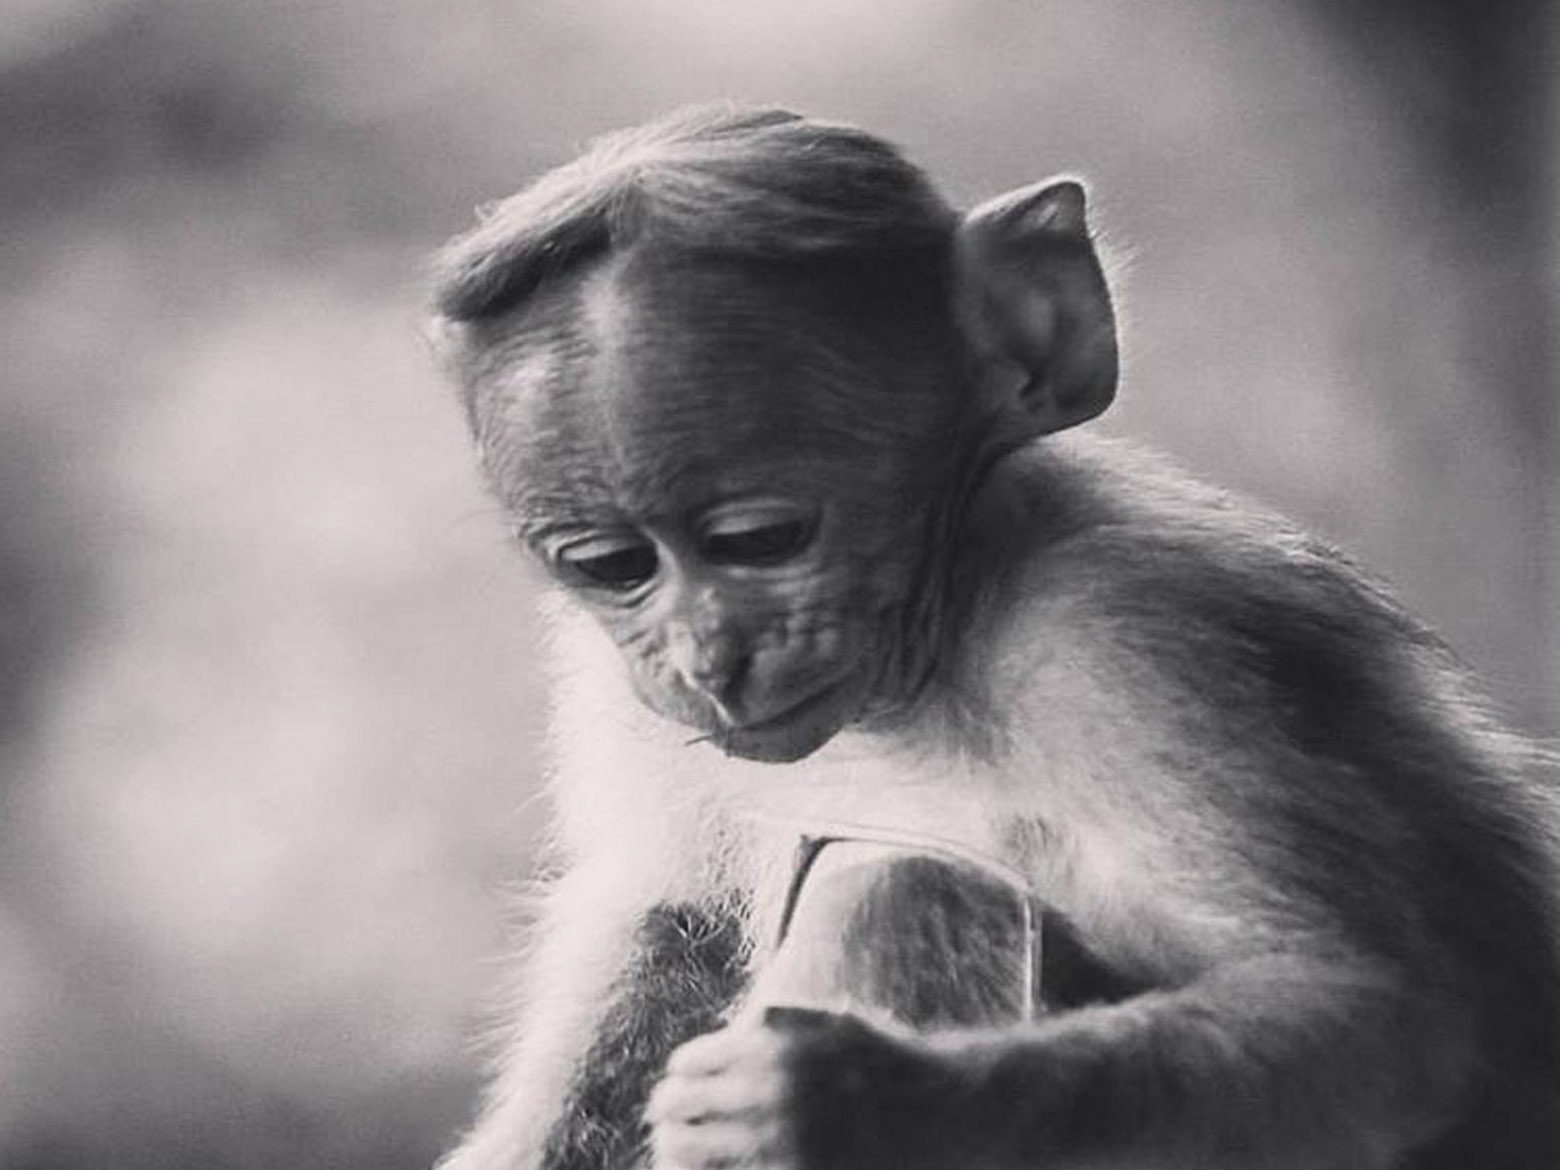 baby monkey in black and white - Free Indian Stock ...